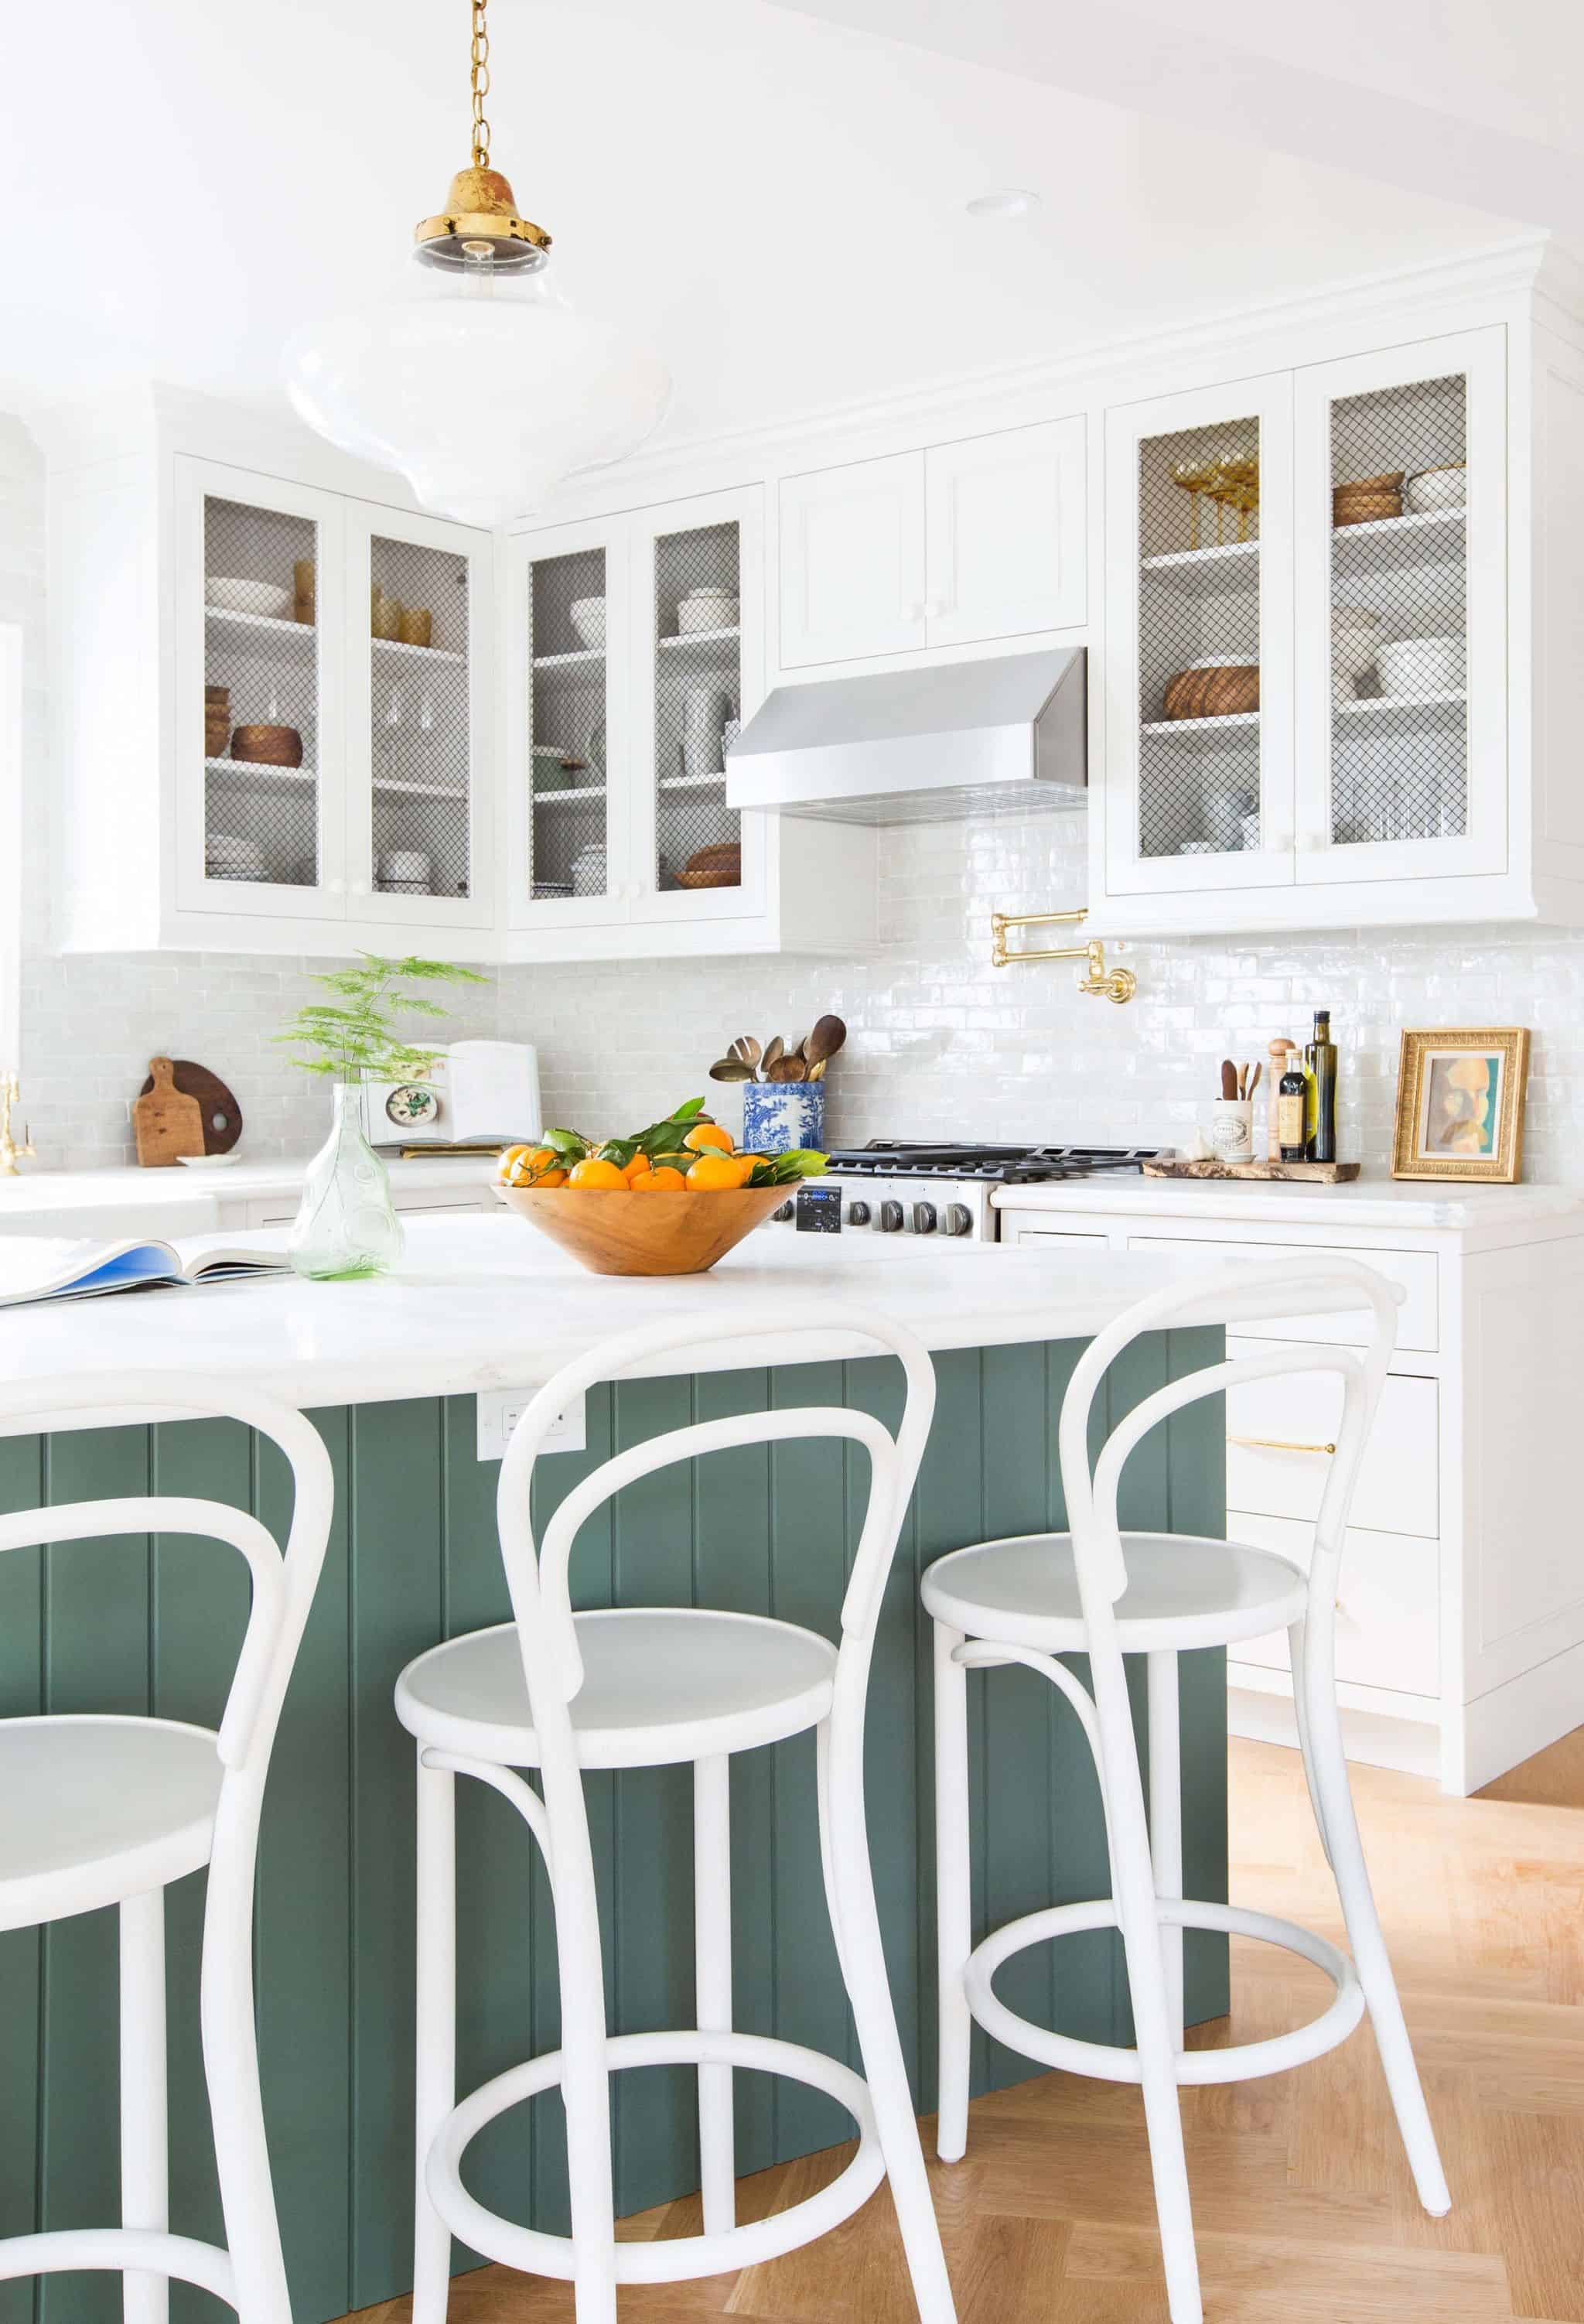 emily-henderson_frigidaire_kitchen-reveal_waverly_english-modern_edited-beams_15